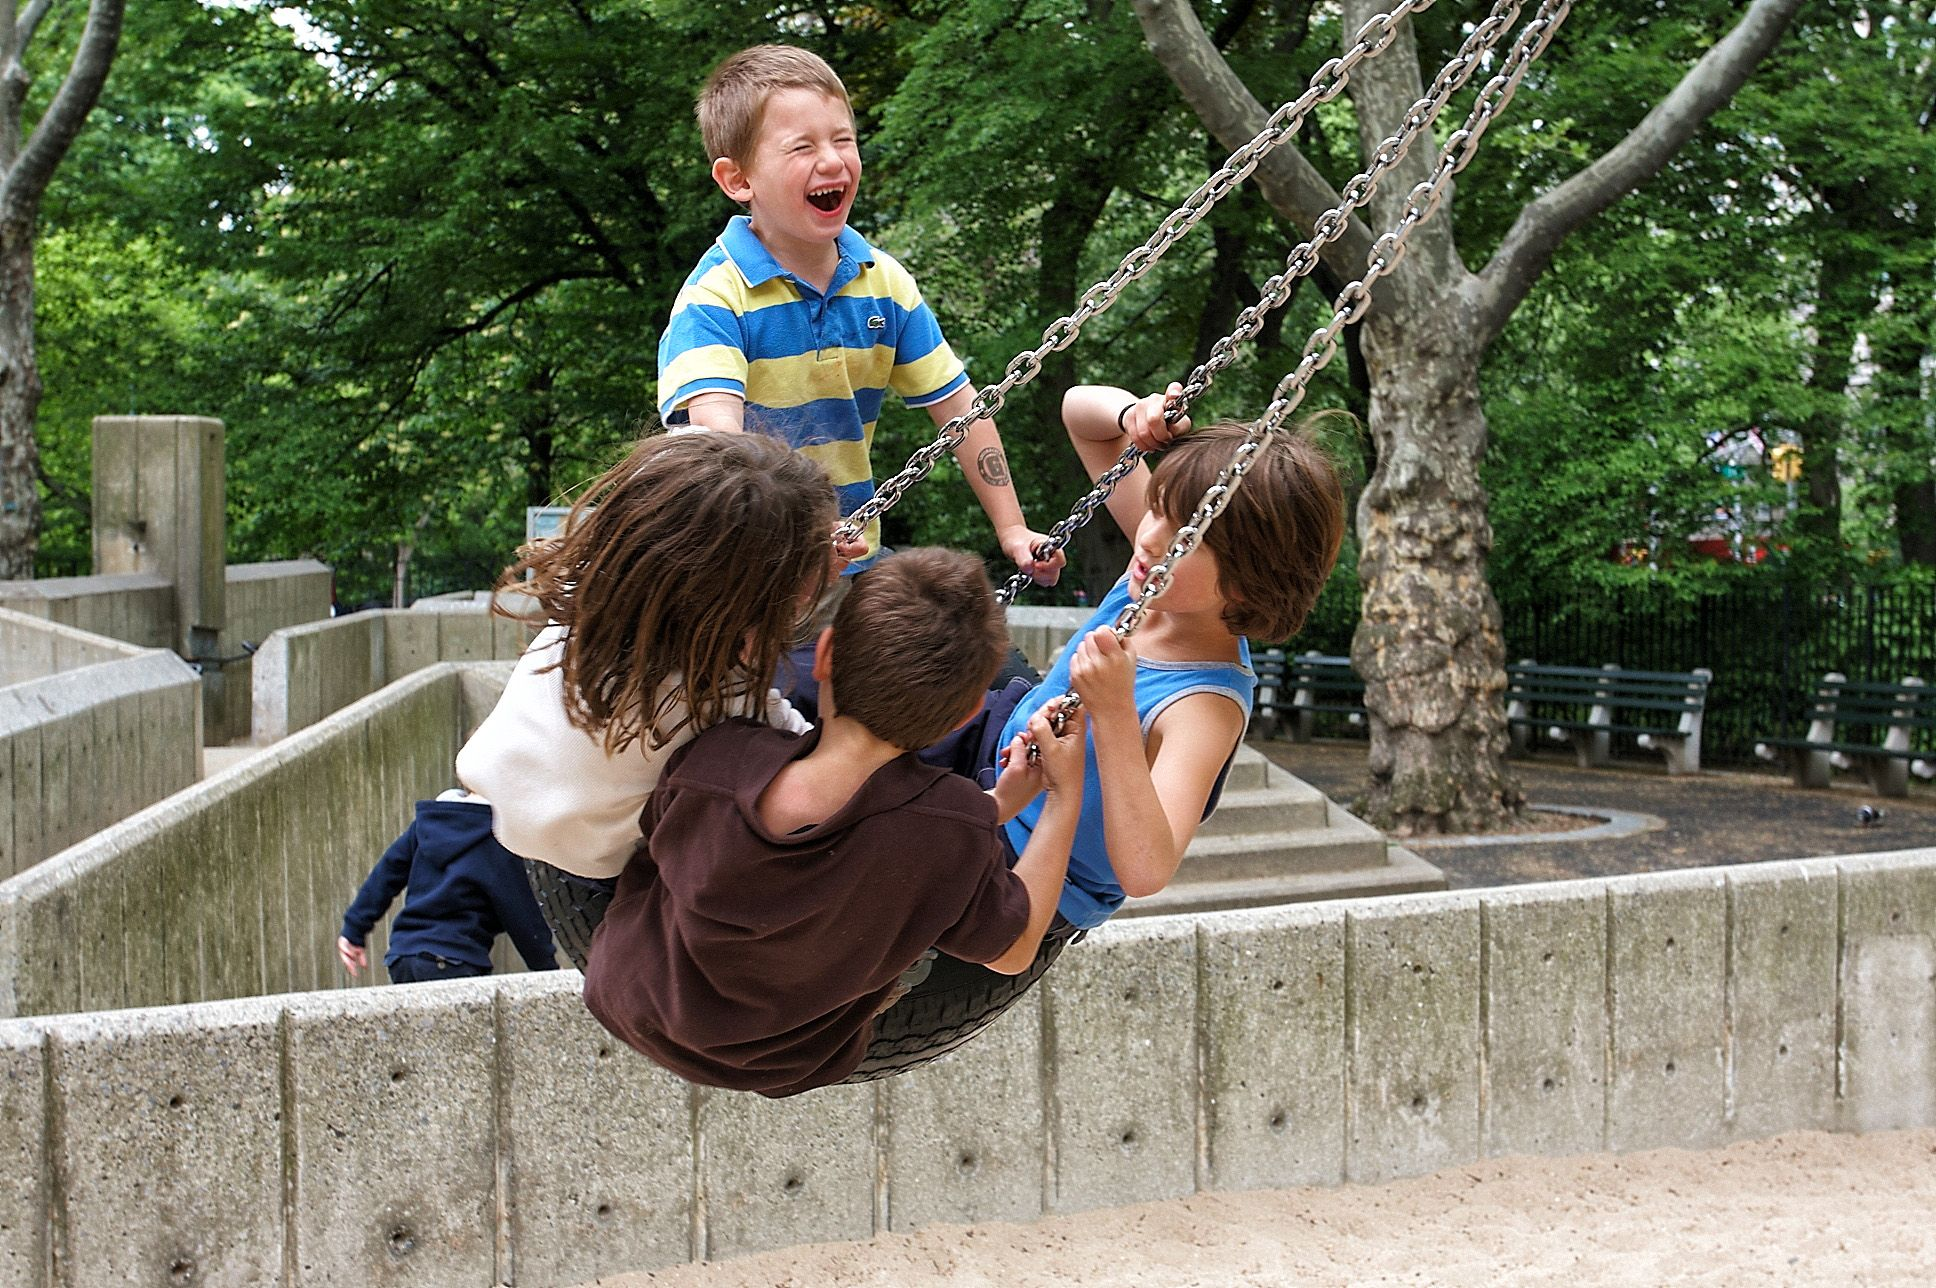 Tire swing! Photo by Michael Jurick #centralplay #centralpark #playground